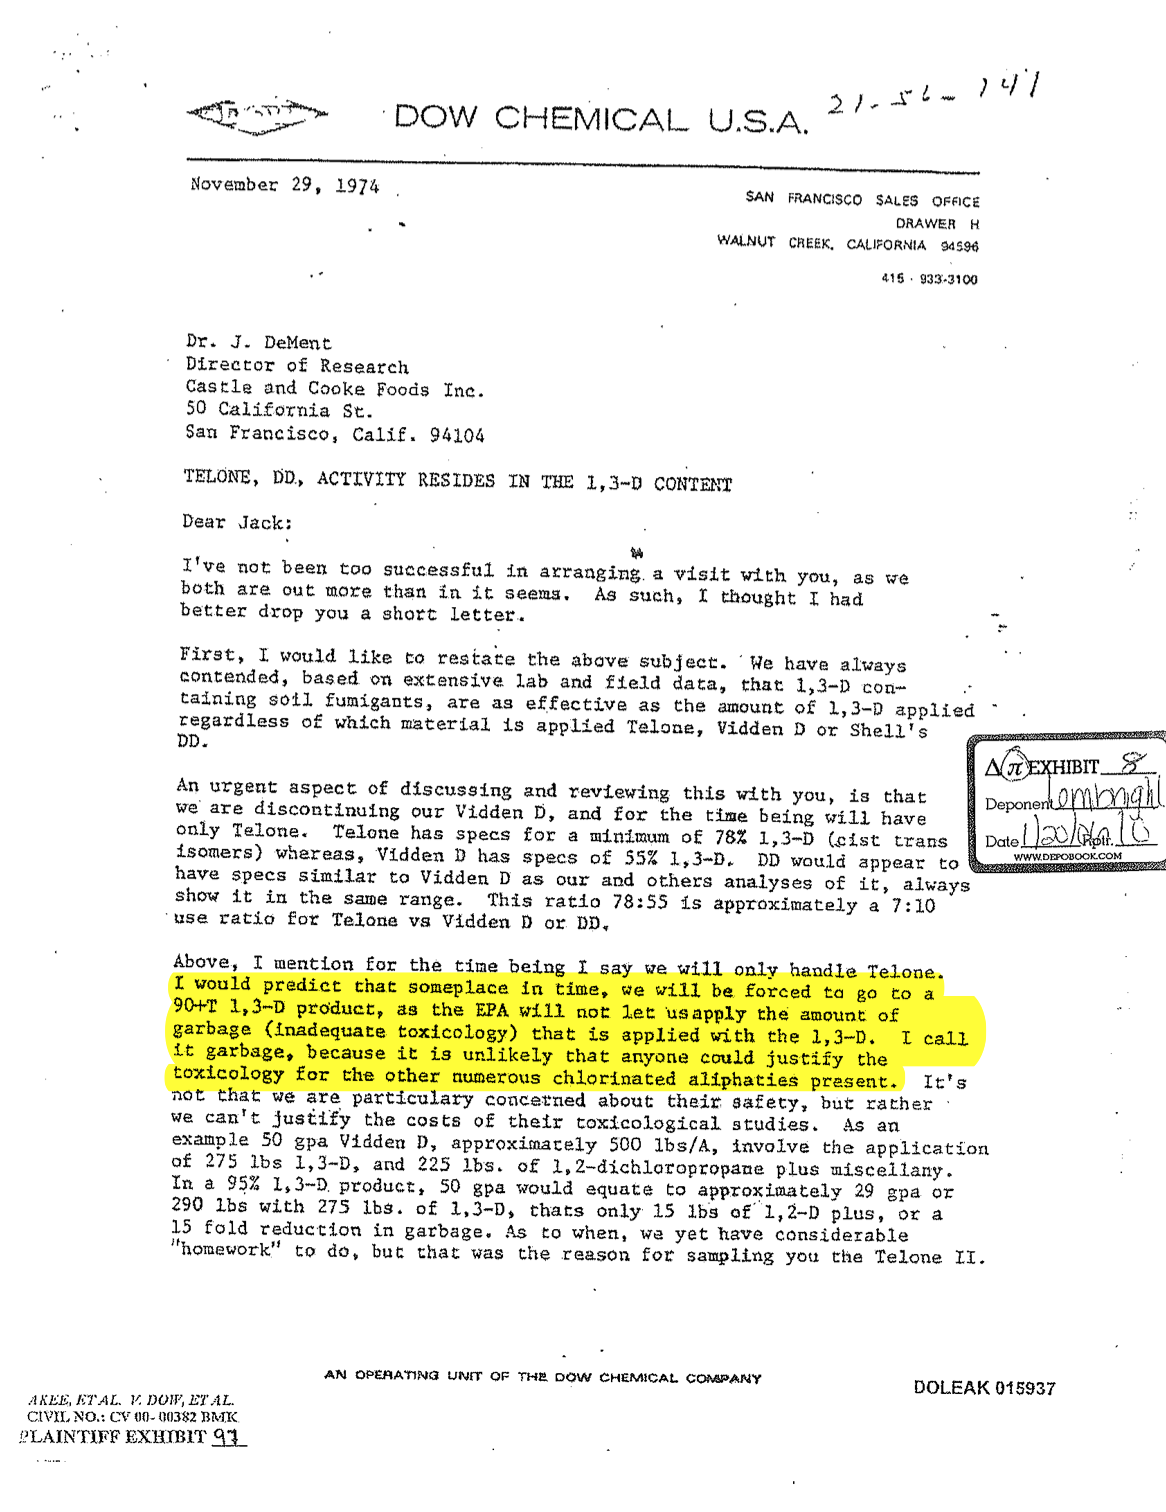 Dow Chemical document